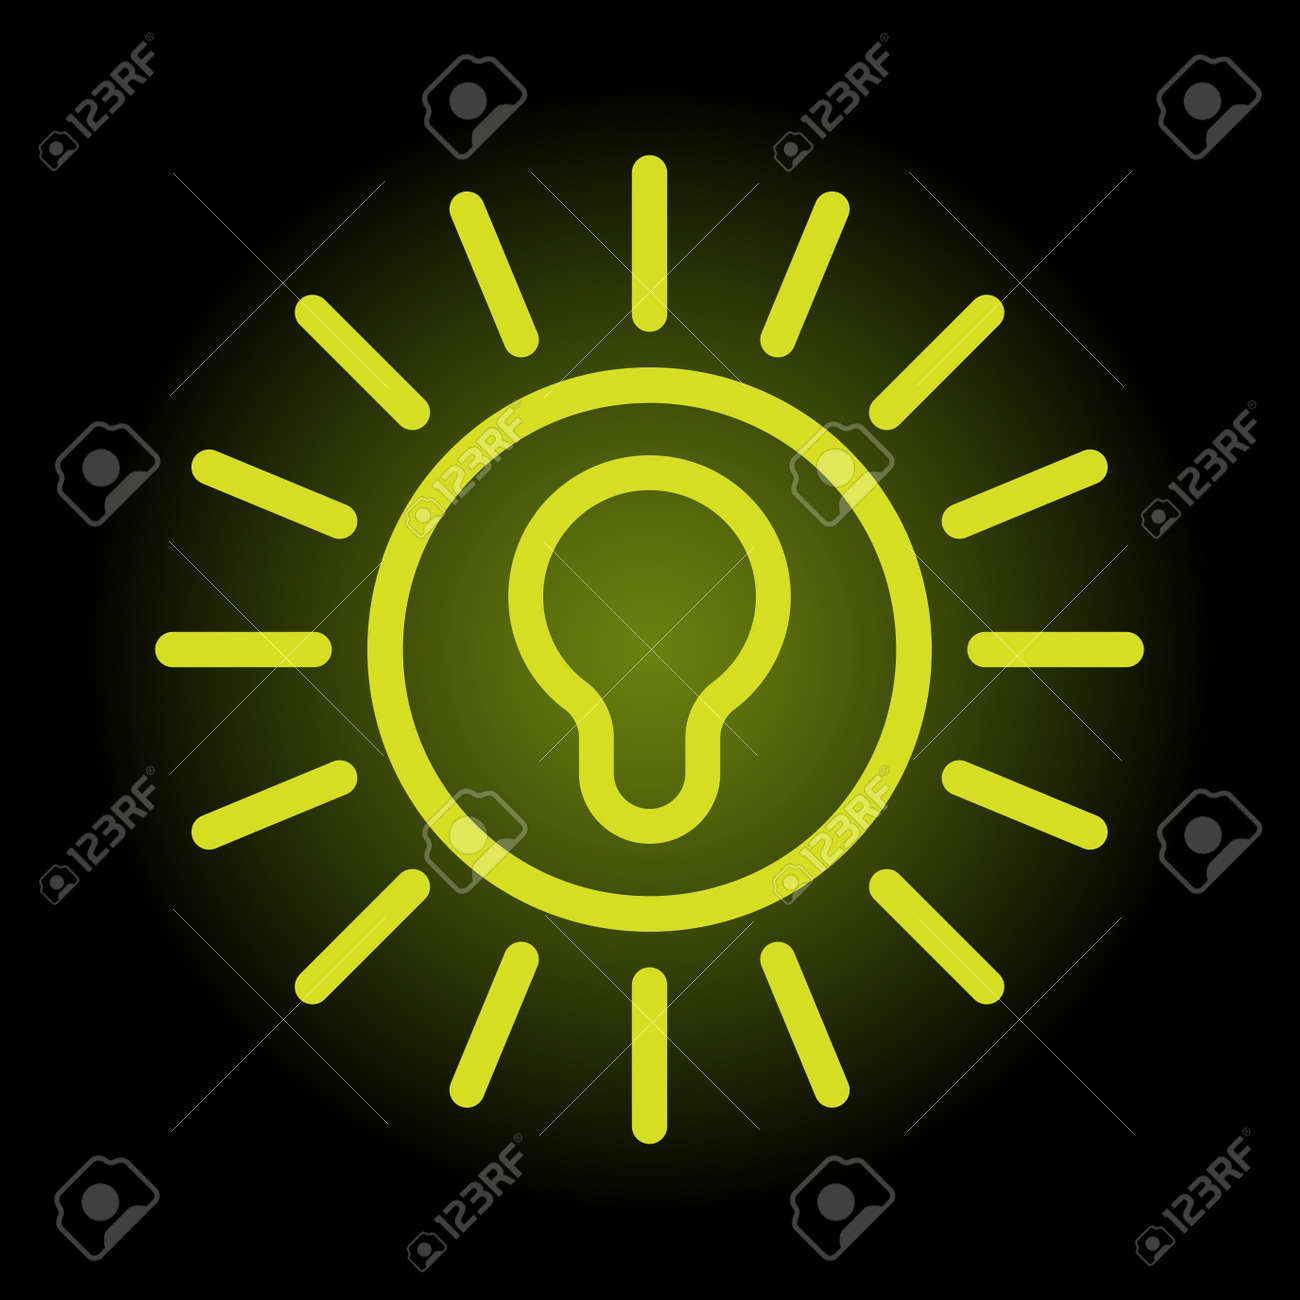 Simple and elegant green bulb icon on black enlightened background Stock Vector - 11079658